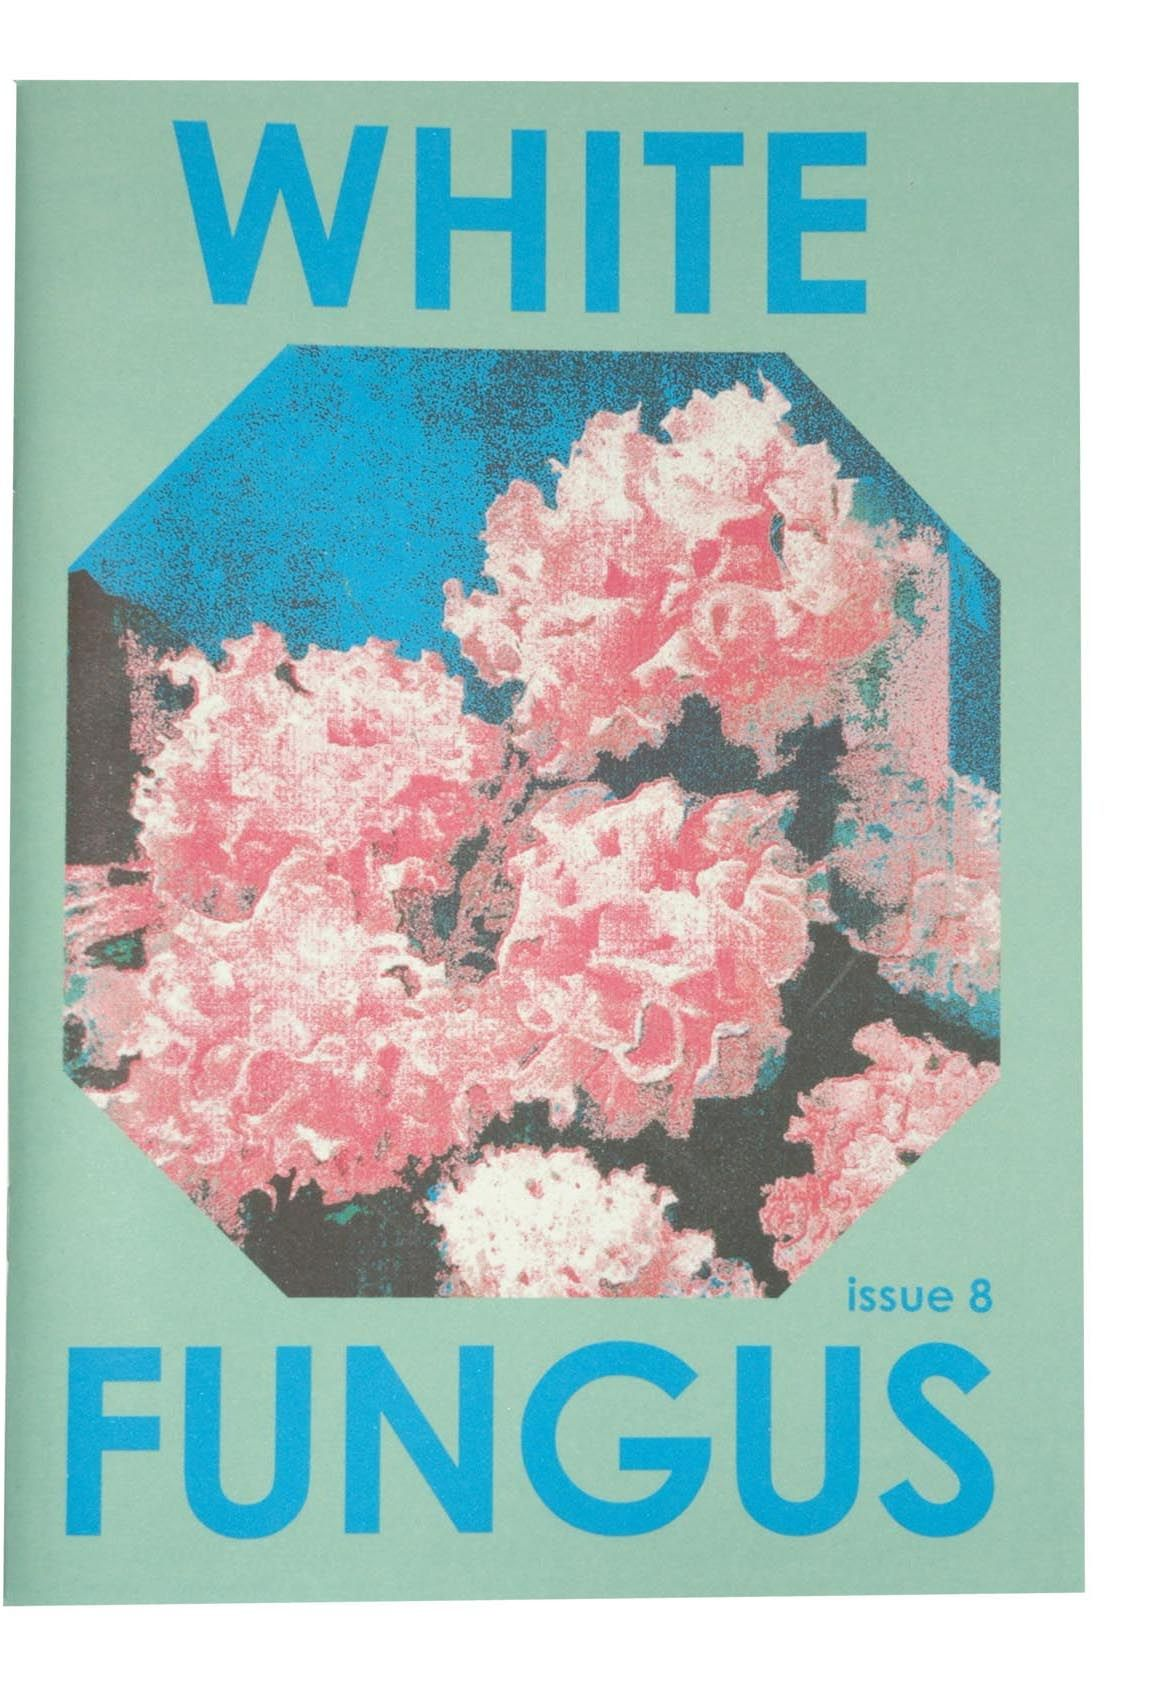 White Fungus issue 8 cover